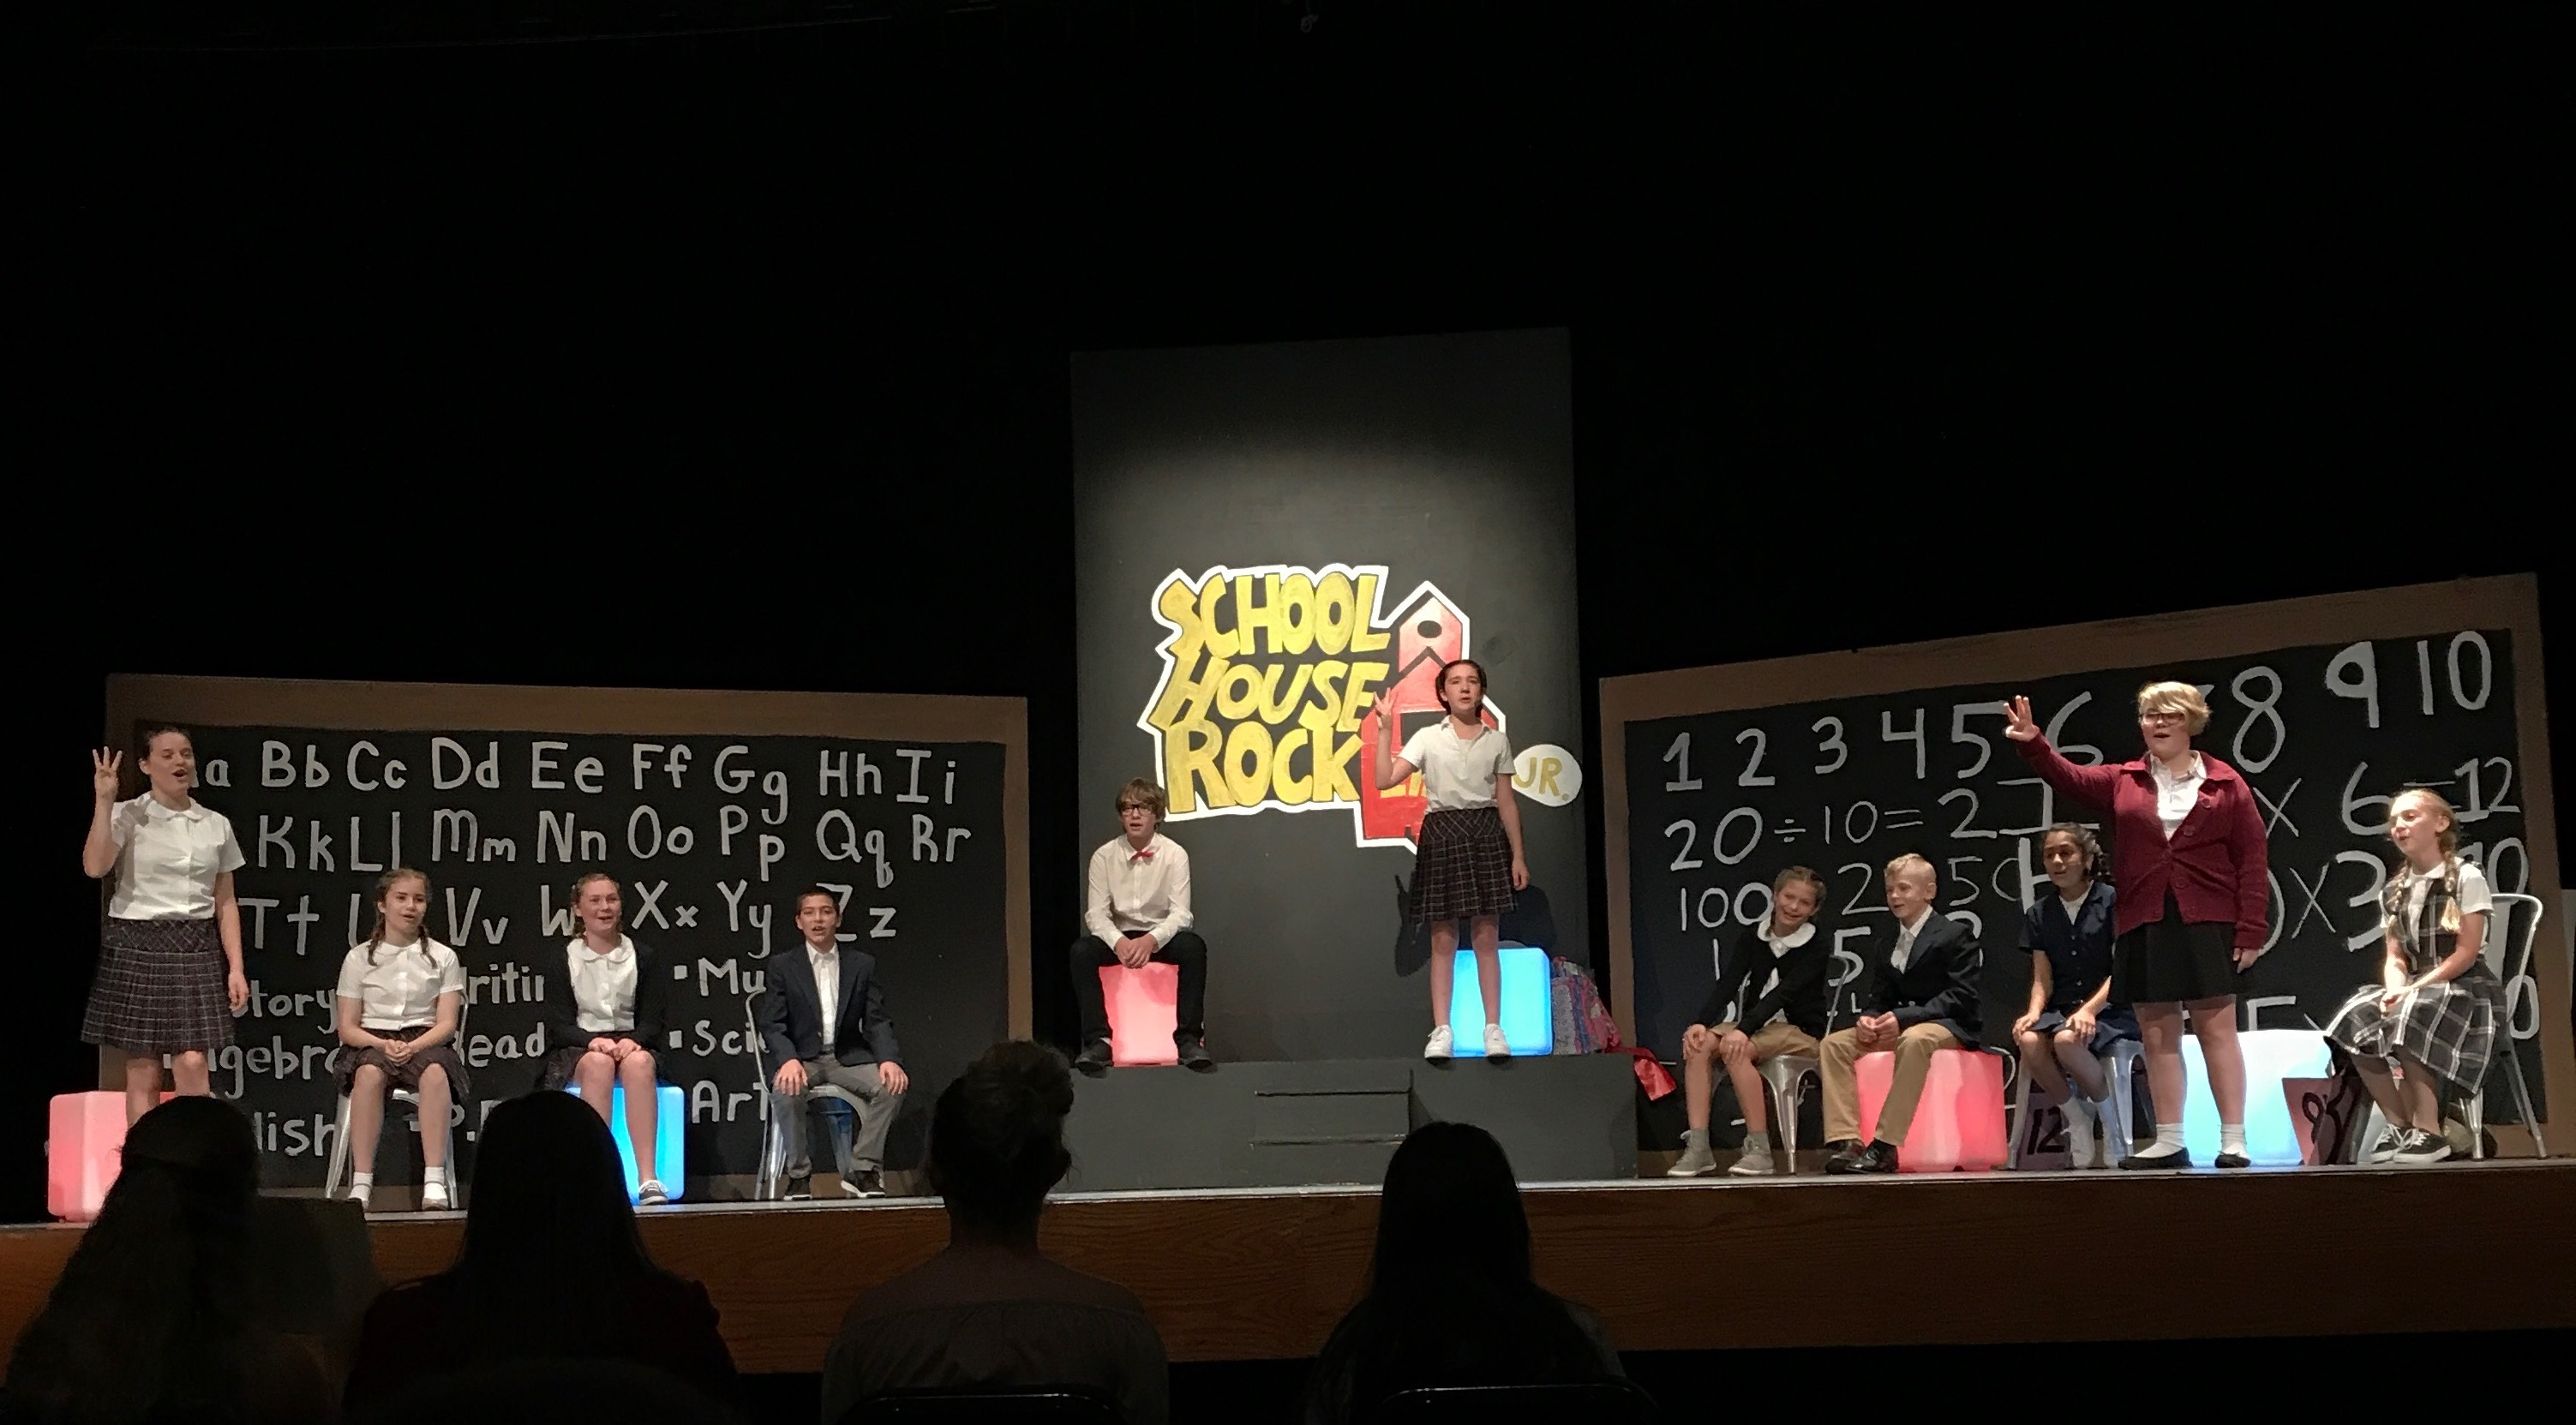 """SVMS 2016/17 Production of """"School House Rock"""""""